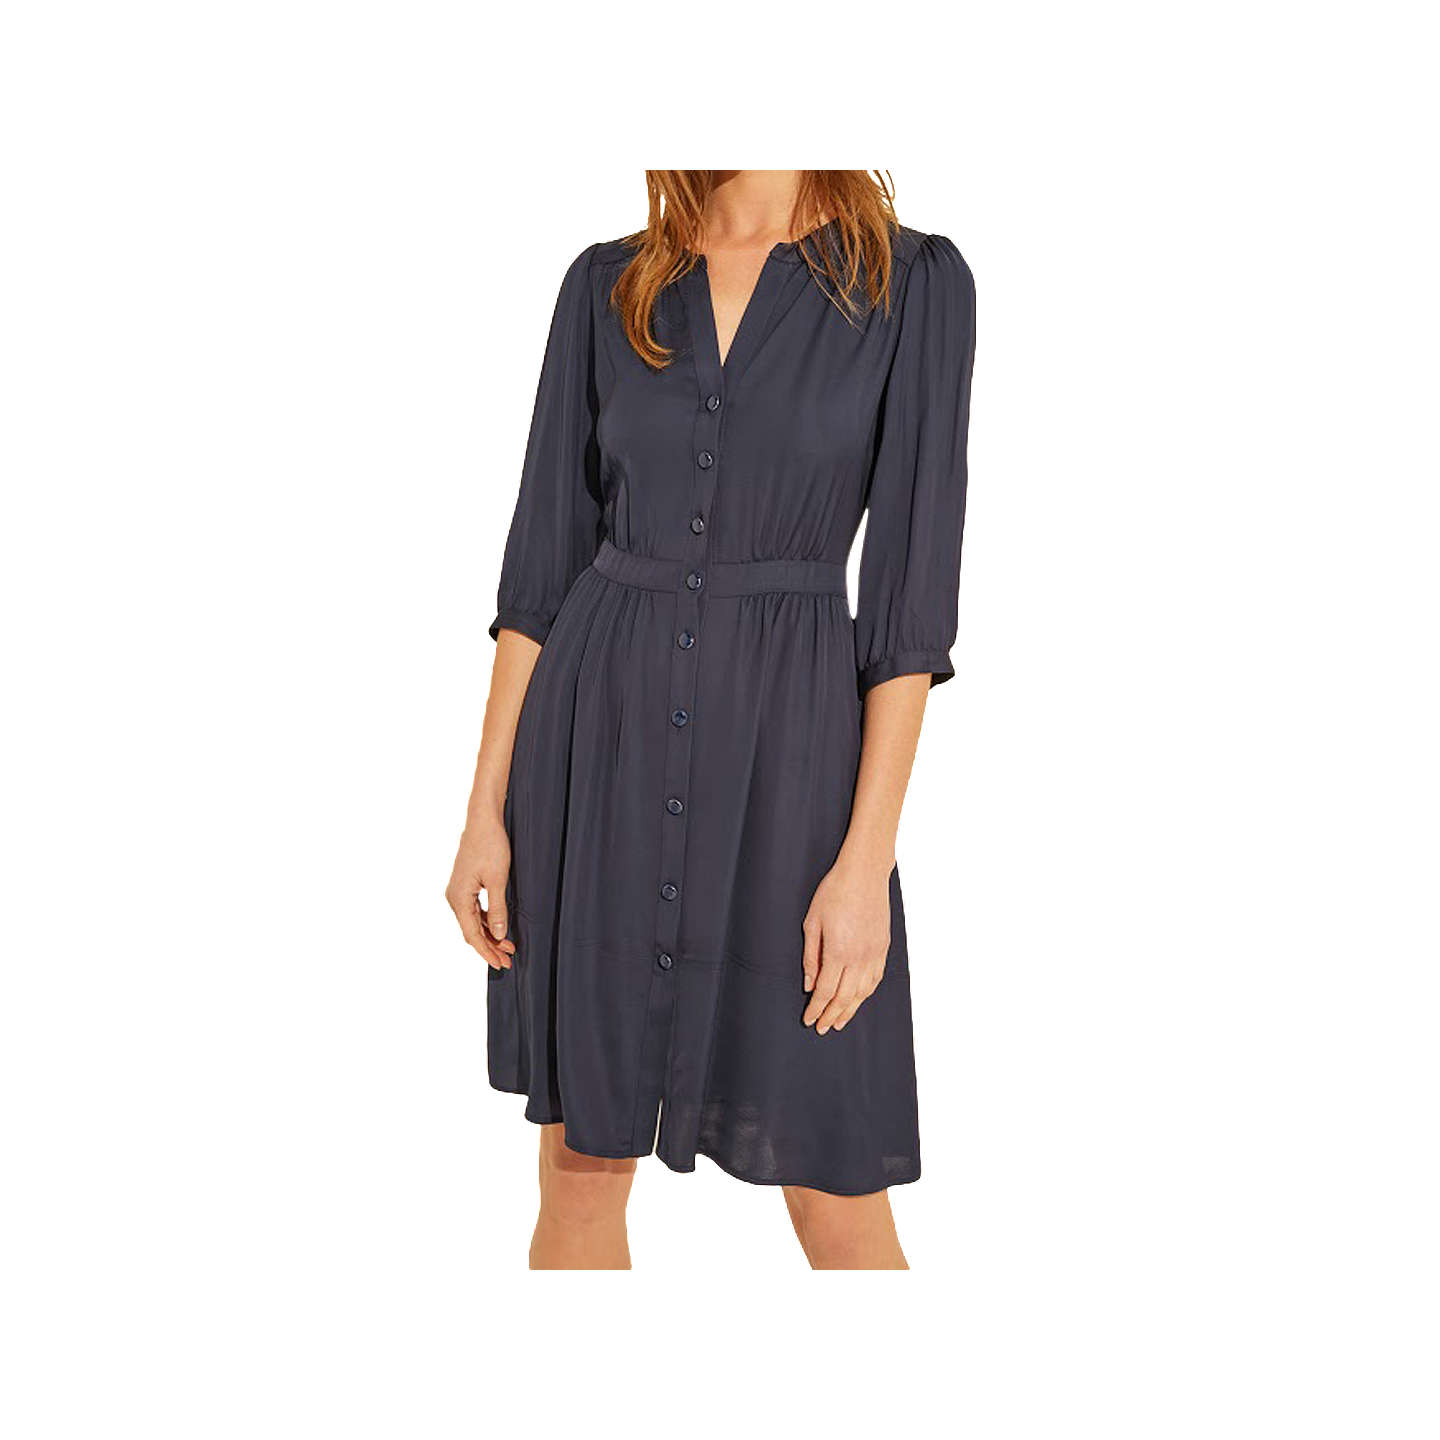 BuyGerard Darel Danicka Dress, Blue, 14 Online at johnlewis.com